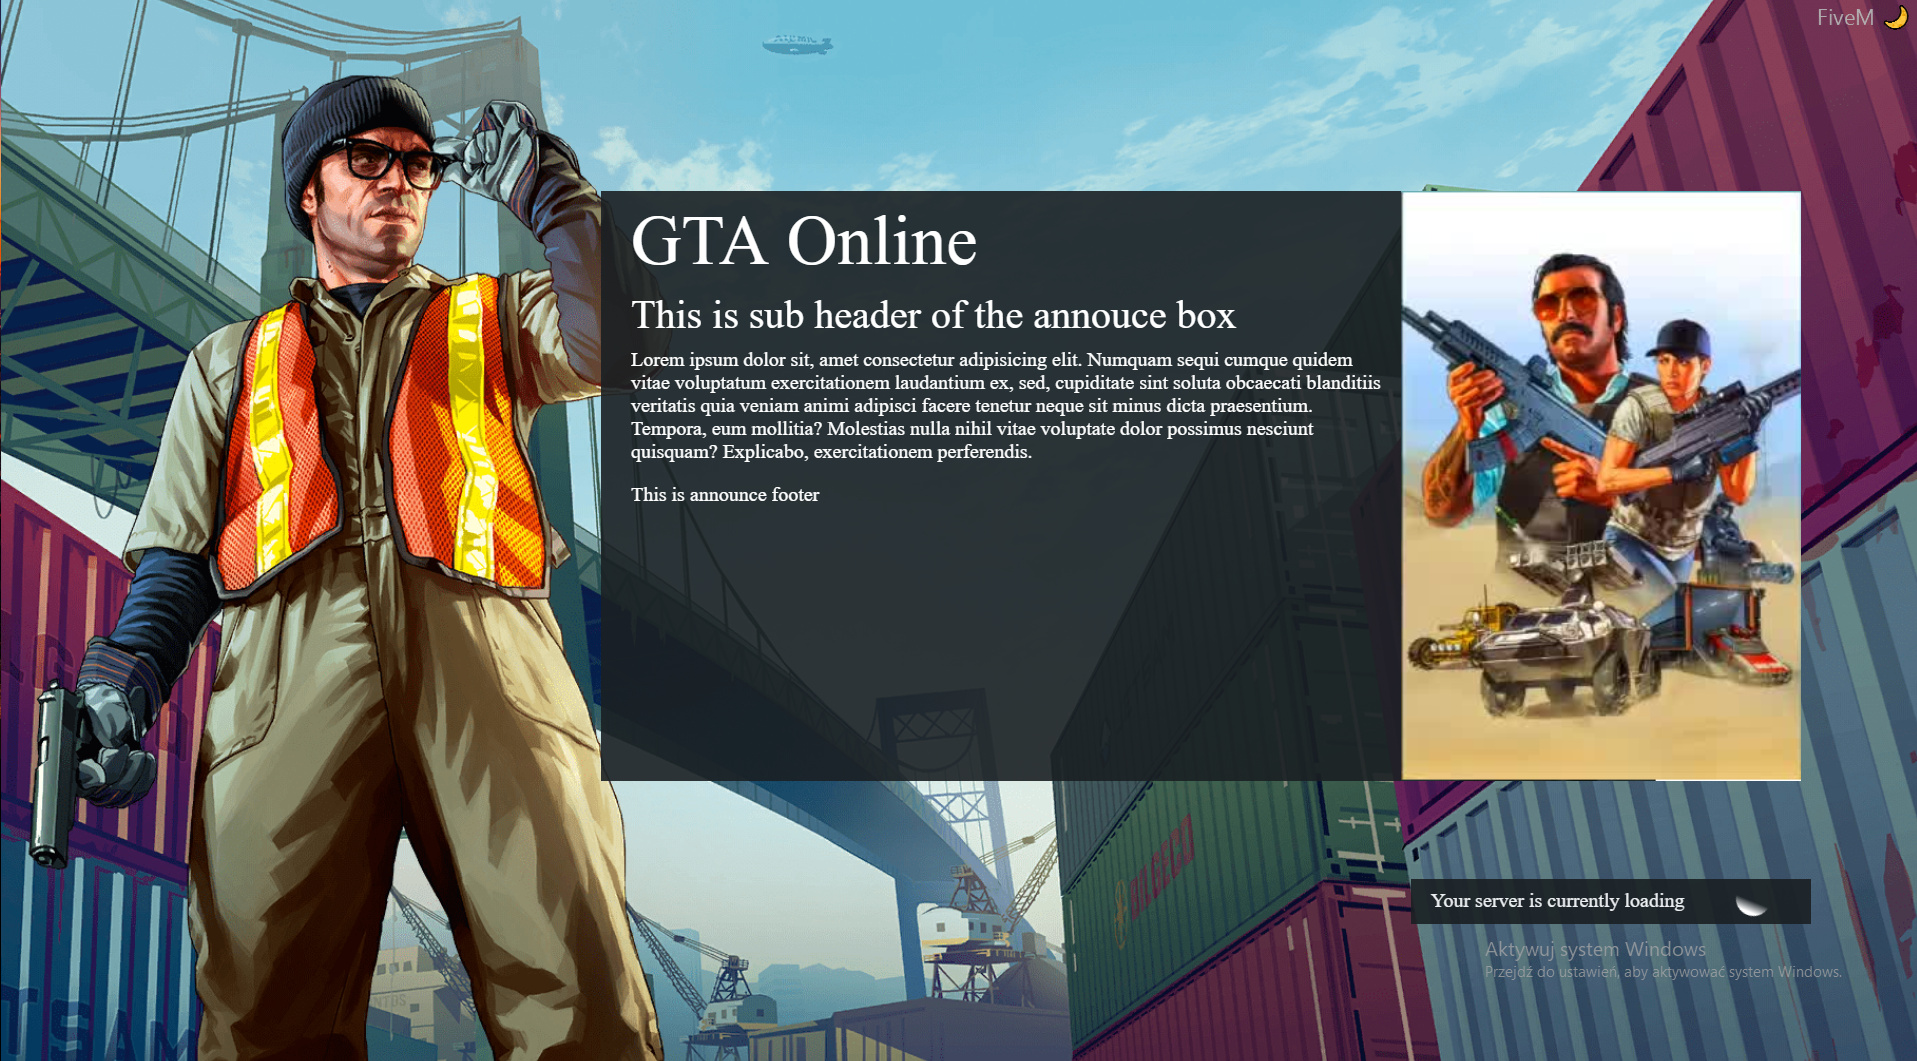 Release]Gta Online loading screen - Releases - Cfx.re Community